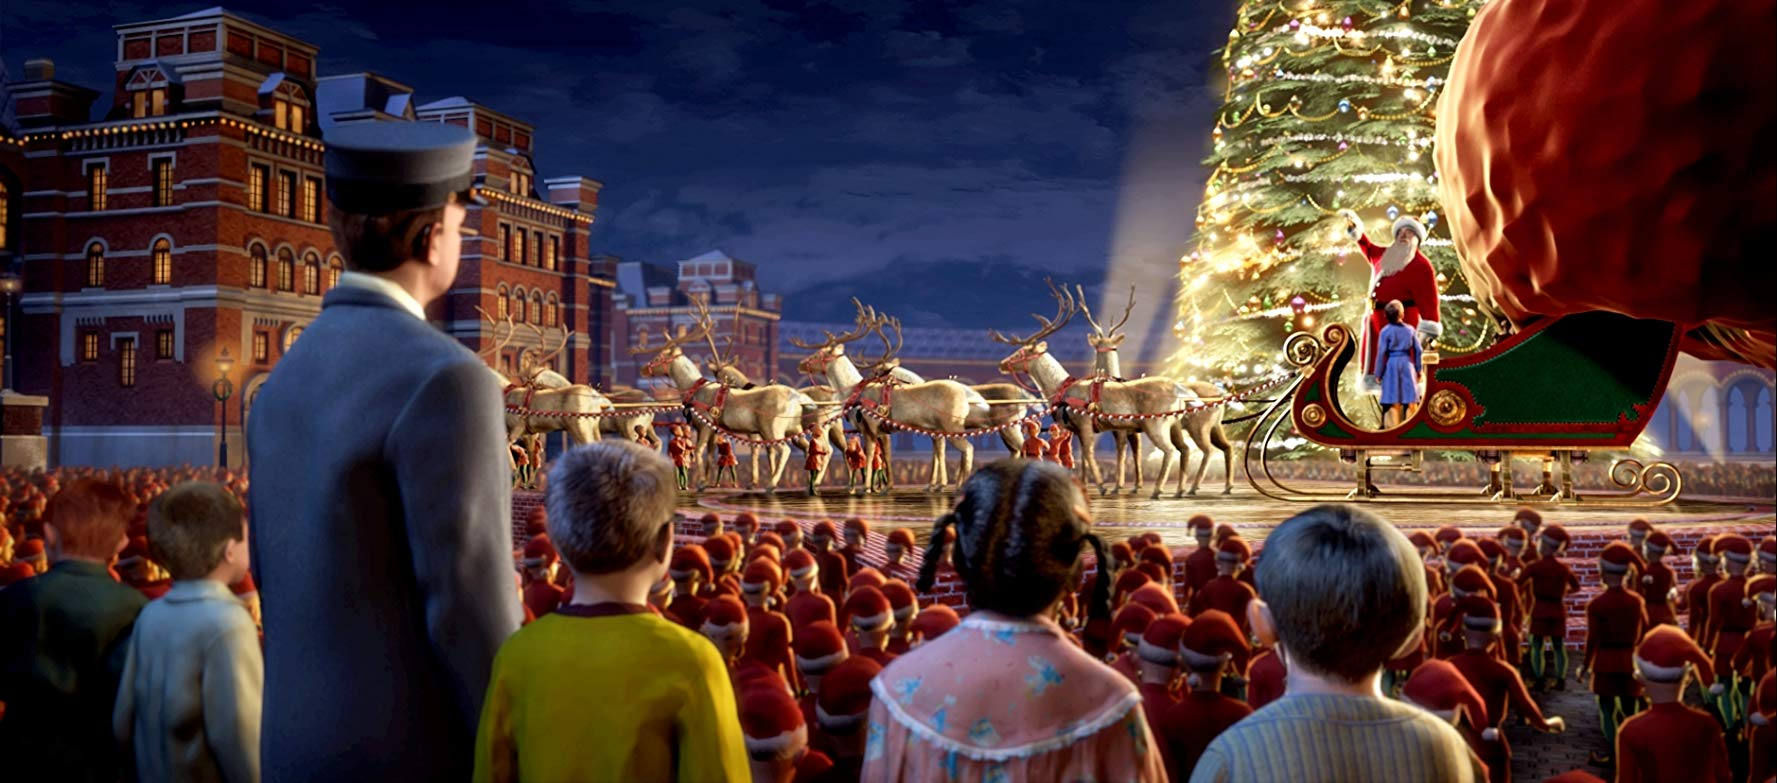 The best family Christmas movies to watch this holiday season